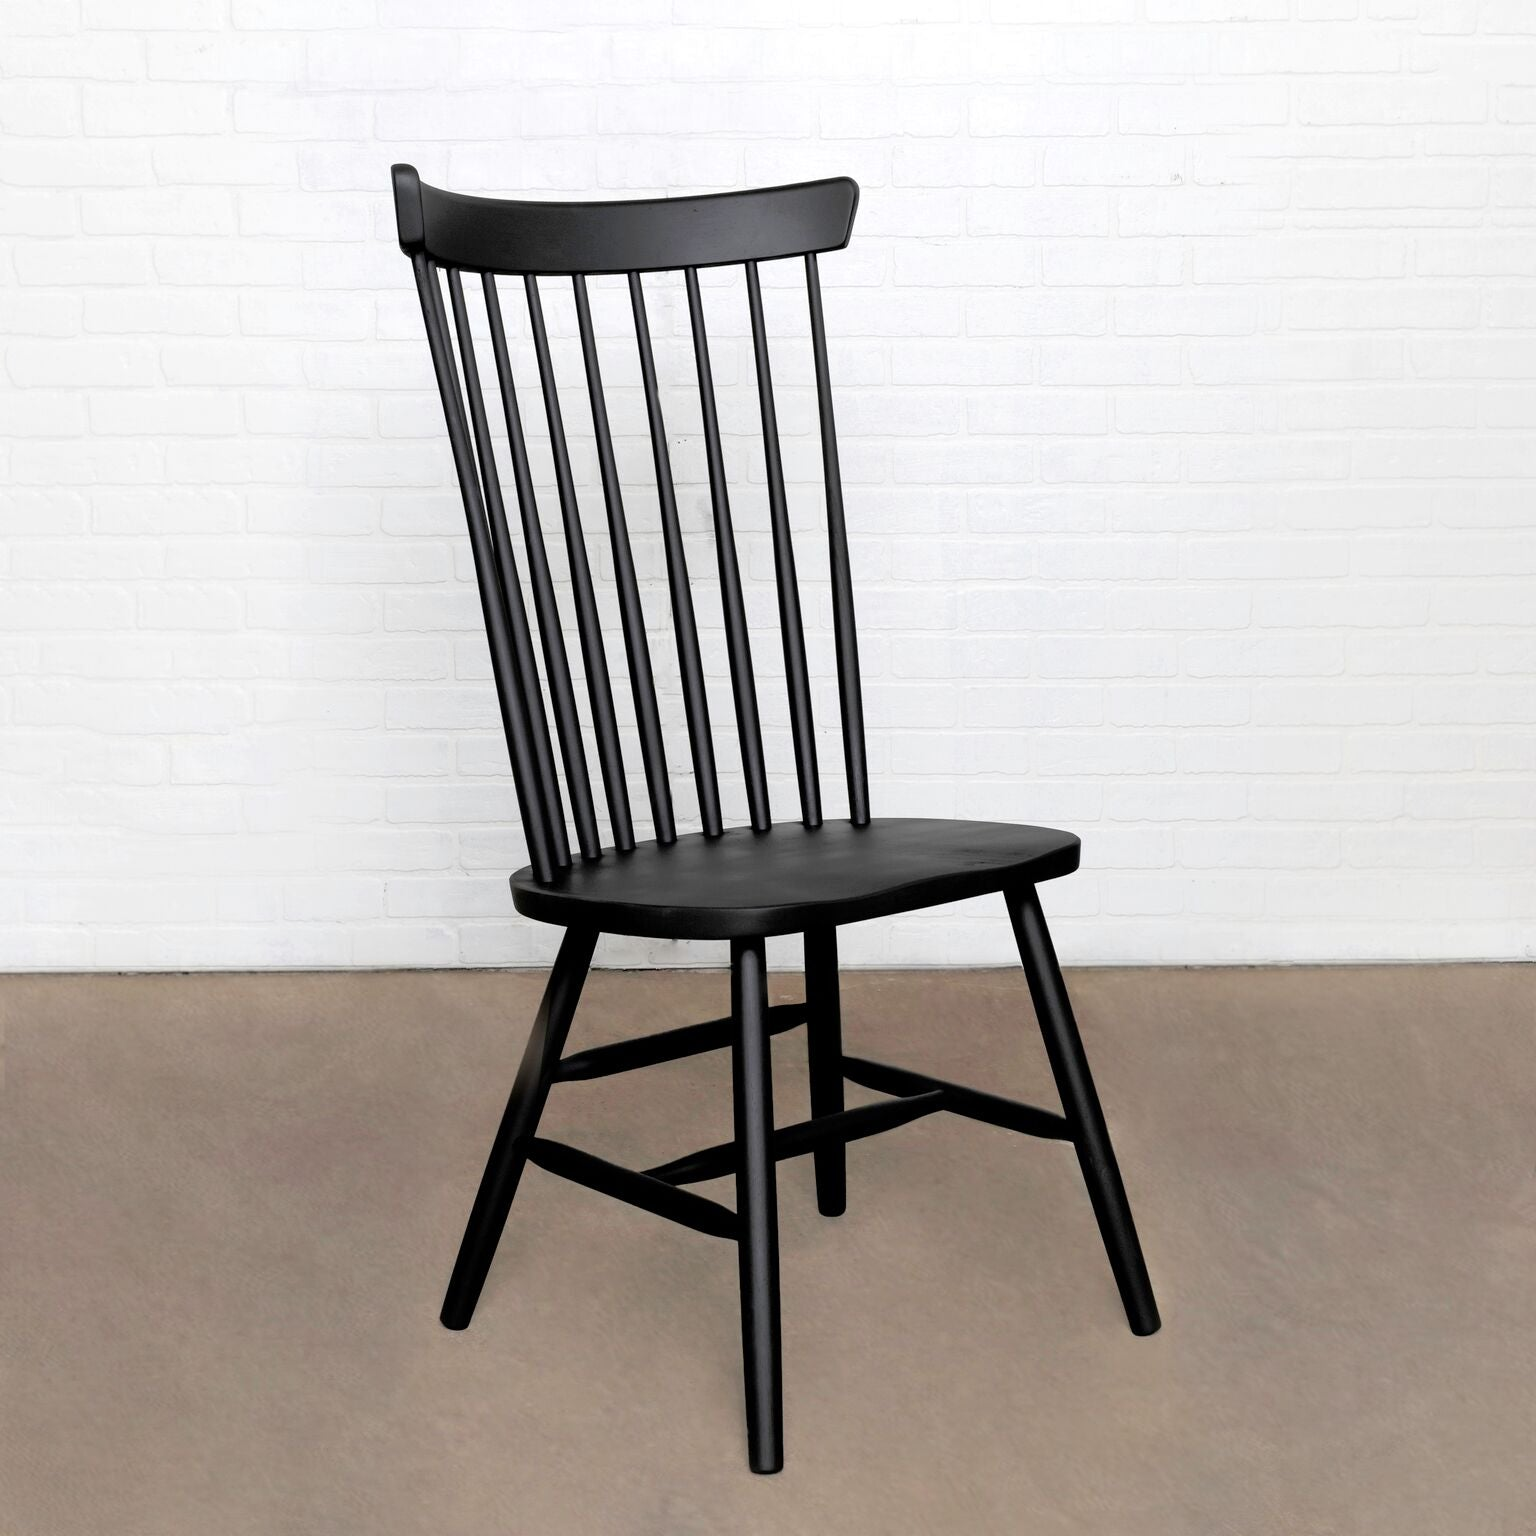 Seating | The Windsor Chair | Americana on Parawood | WW SKU: C-290  and KK SKU: WIN-DC-1, Width: 23, Depth: 18, Height: 38, Weight: 38 | Wood |